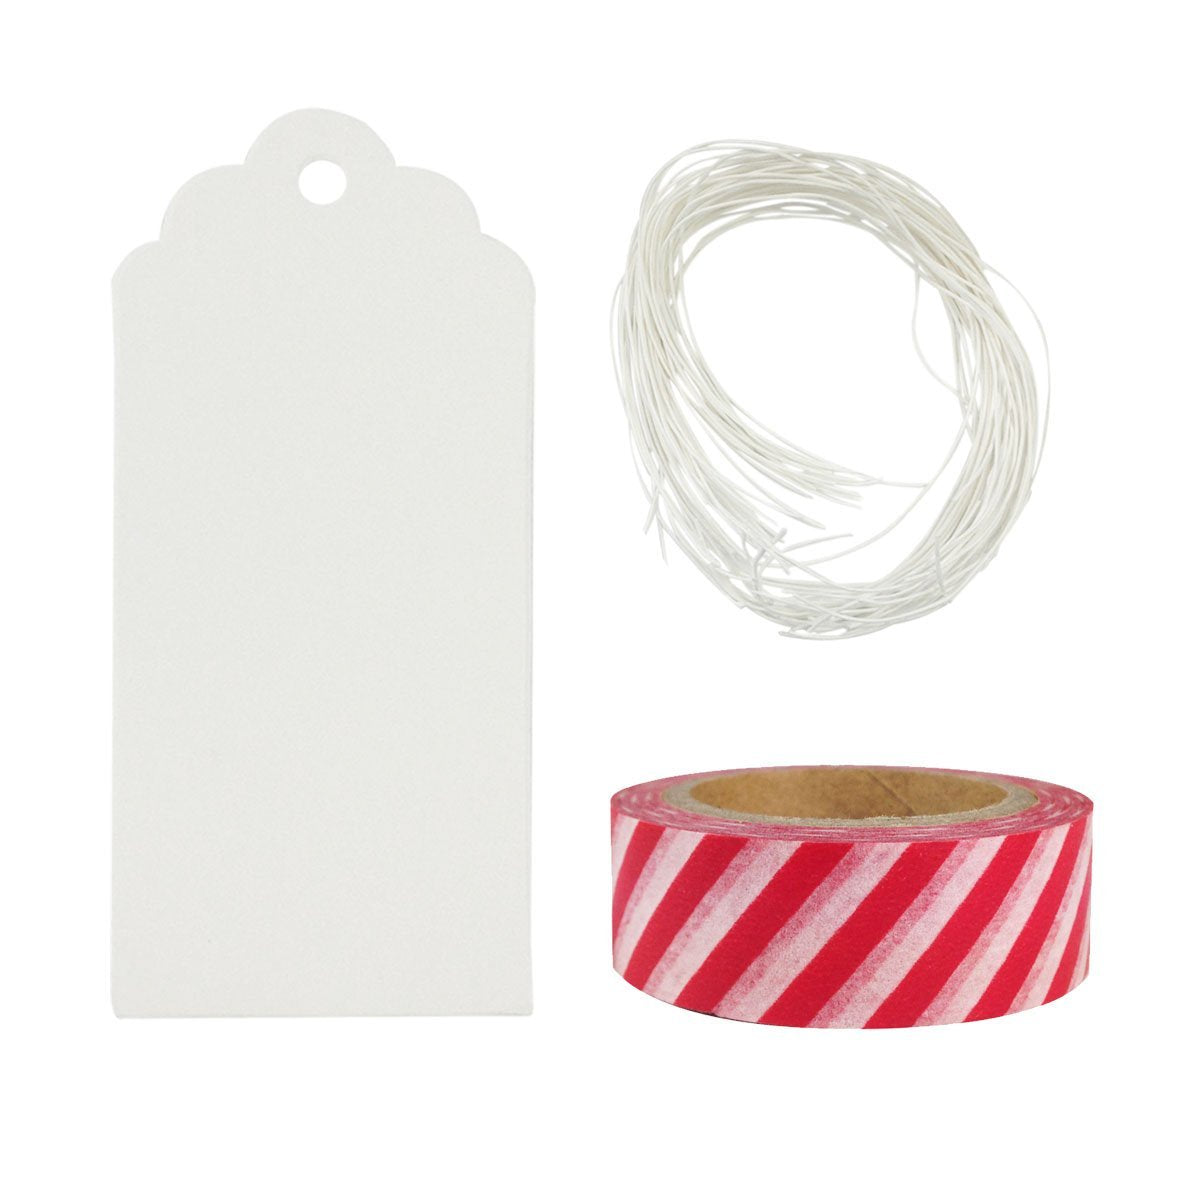 Wrapables 50 White Scallop Gift Tags with Free Cut String & 1 Washi Roll